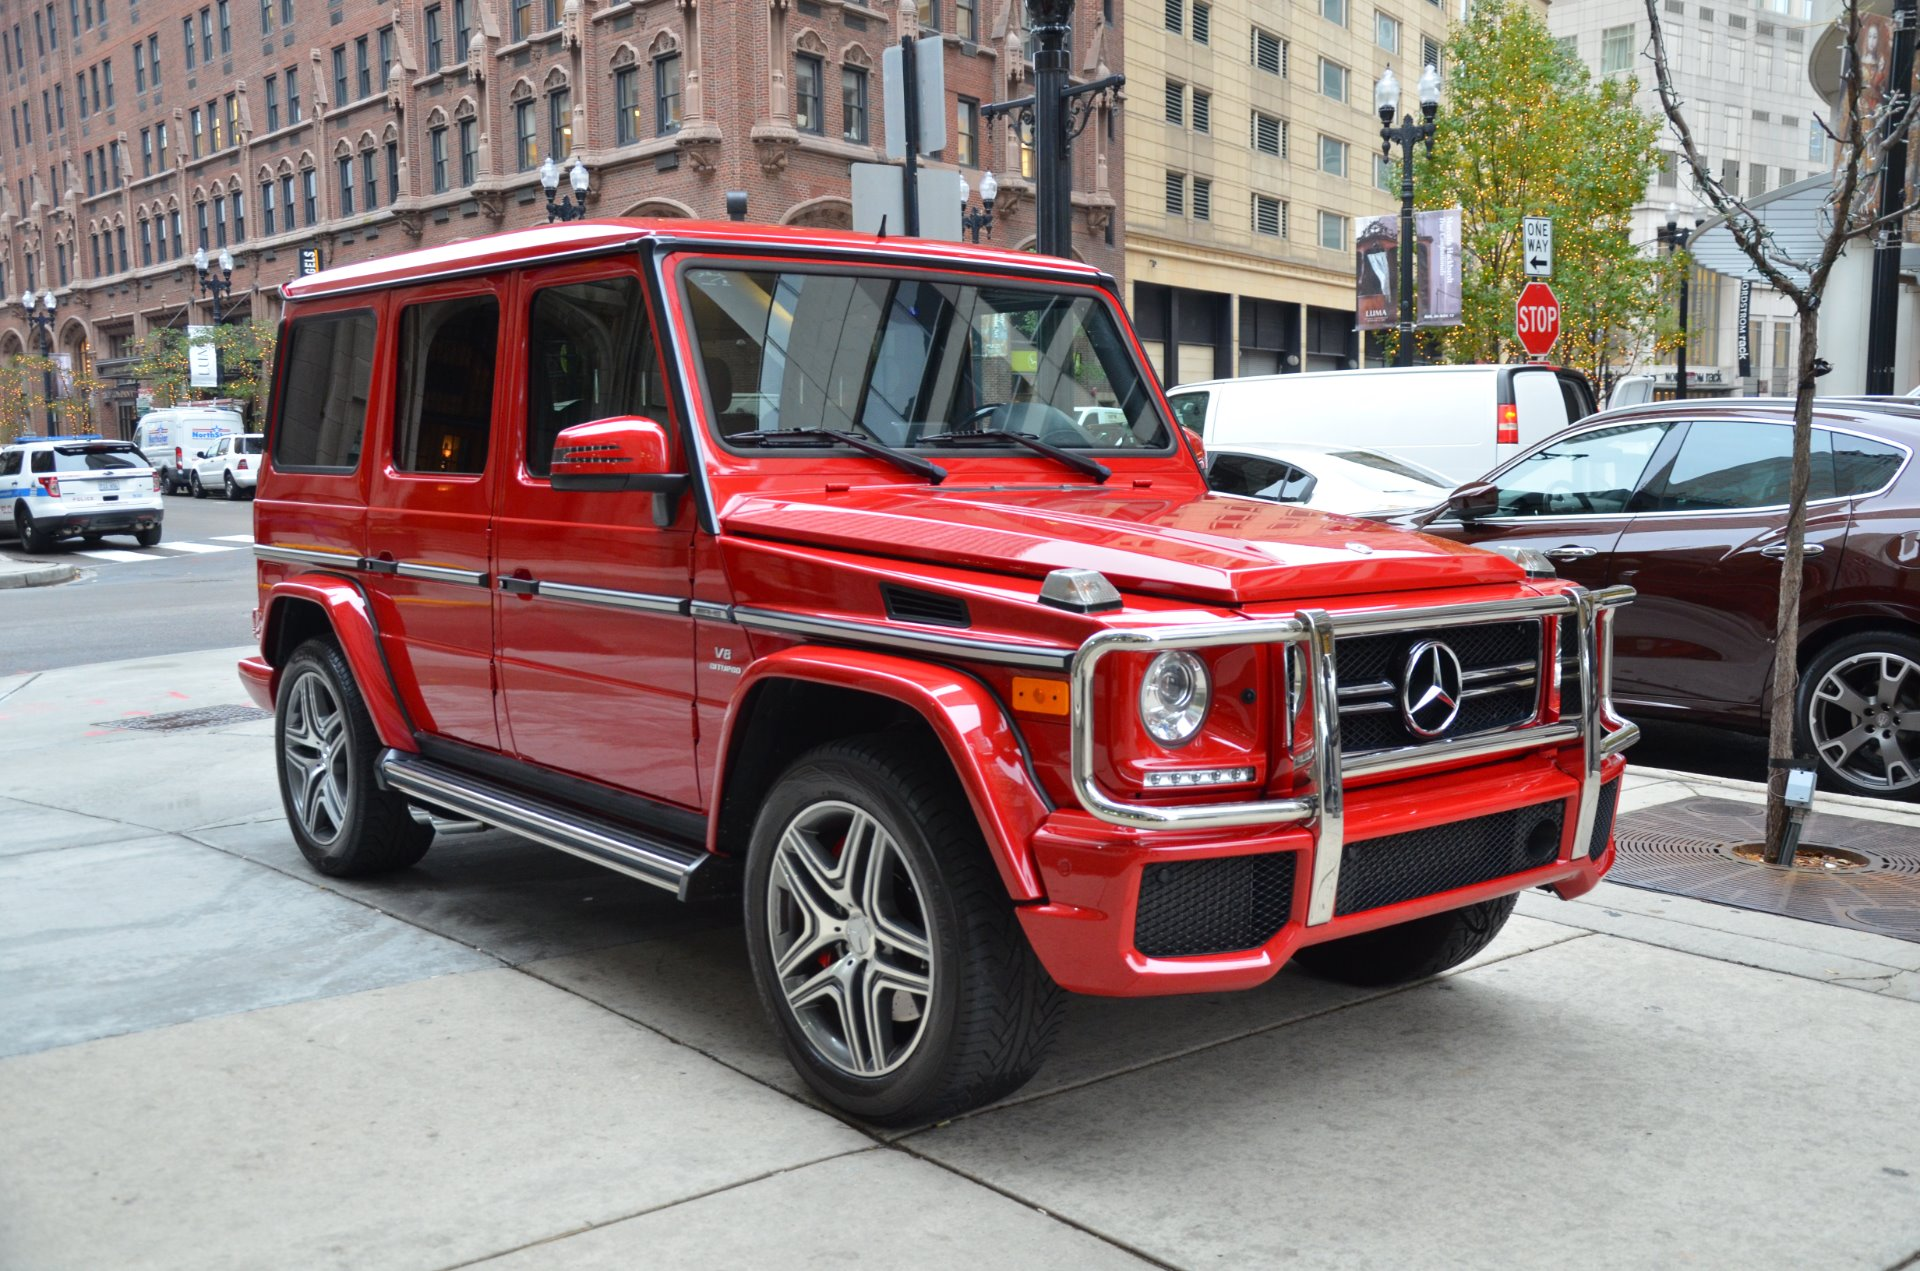 2013 mercedes benz g class g63 amg stock b856a for sale for 2013 mercedes benz g class